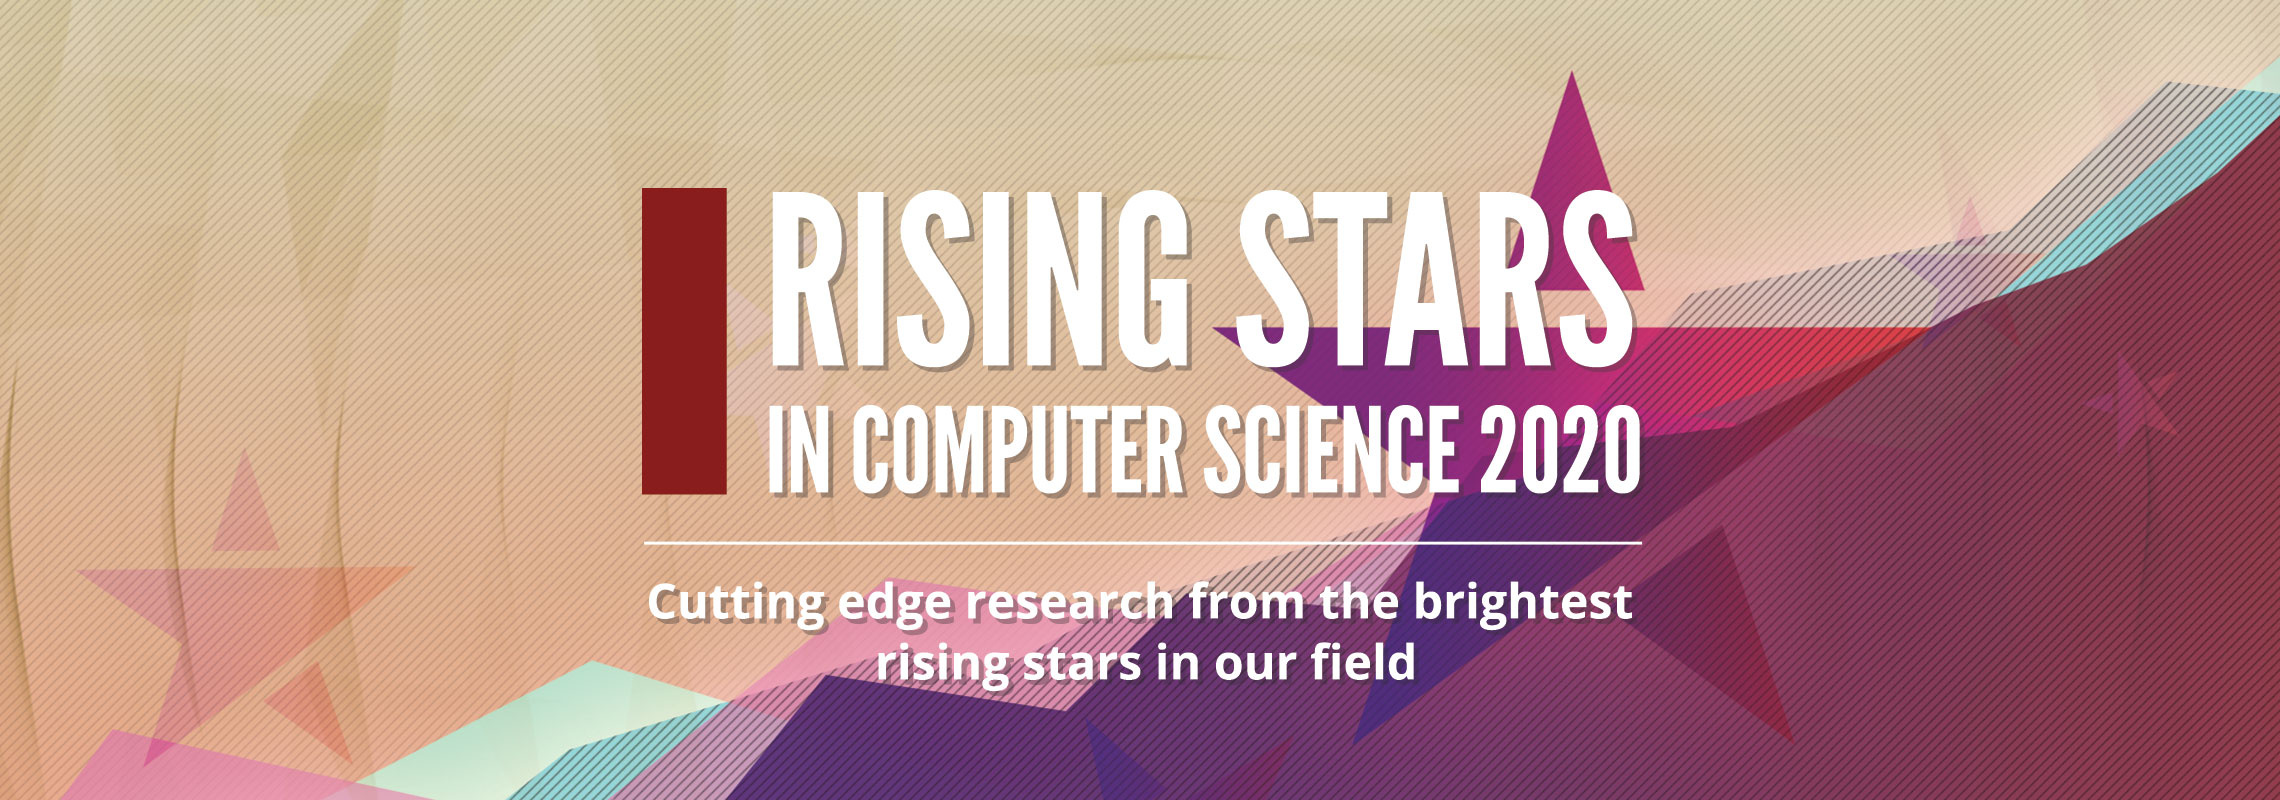 Rising Stars in Computer Science 2020: Cutting edge research from the brightest rising stars in our field